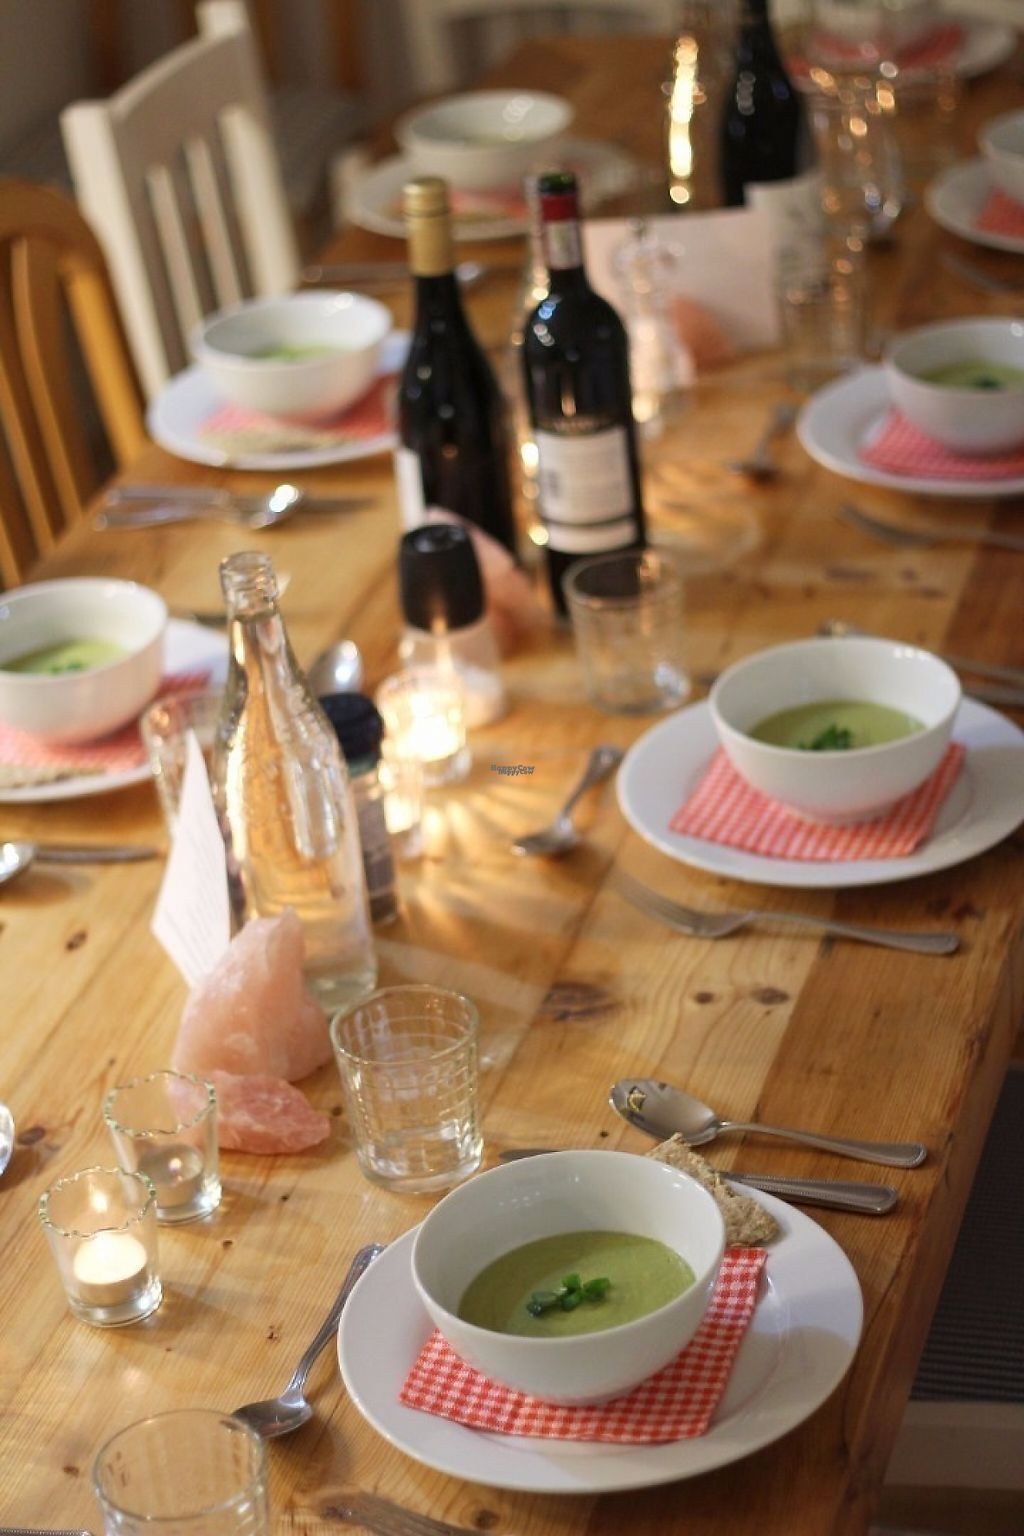 "Photo of Green & Vegan  by <a href=""/members/profile/KarenLouiseFletcher"">KarenLouiseFletcher</a> <br/>Minted Pea Soup <br/> April 3, 2017  - <a href='/contact/abuse/image/89365/244299'>Report</a>"